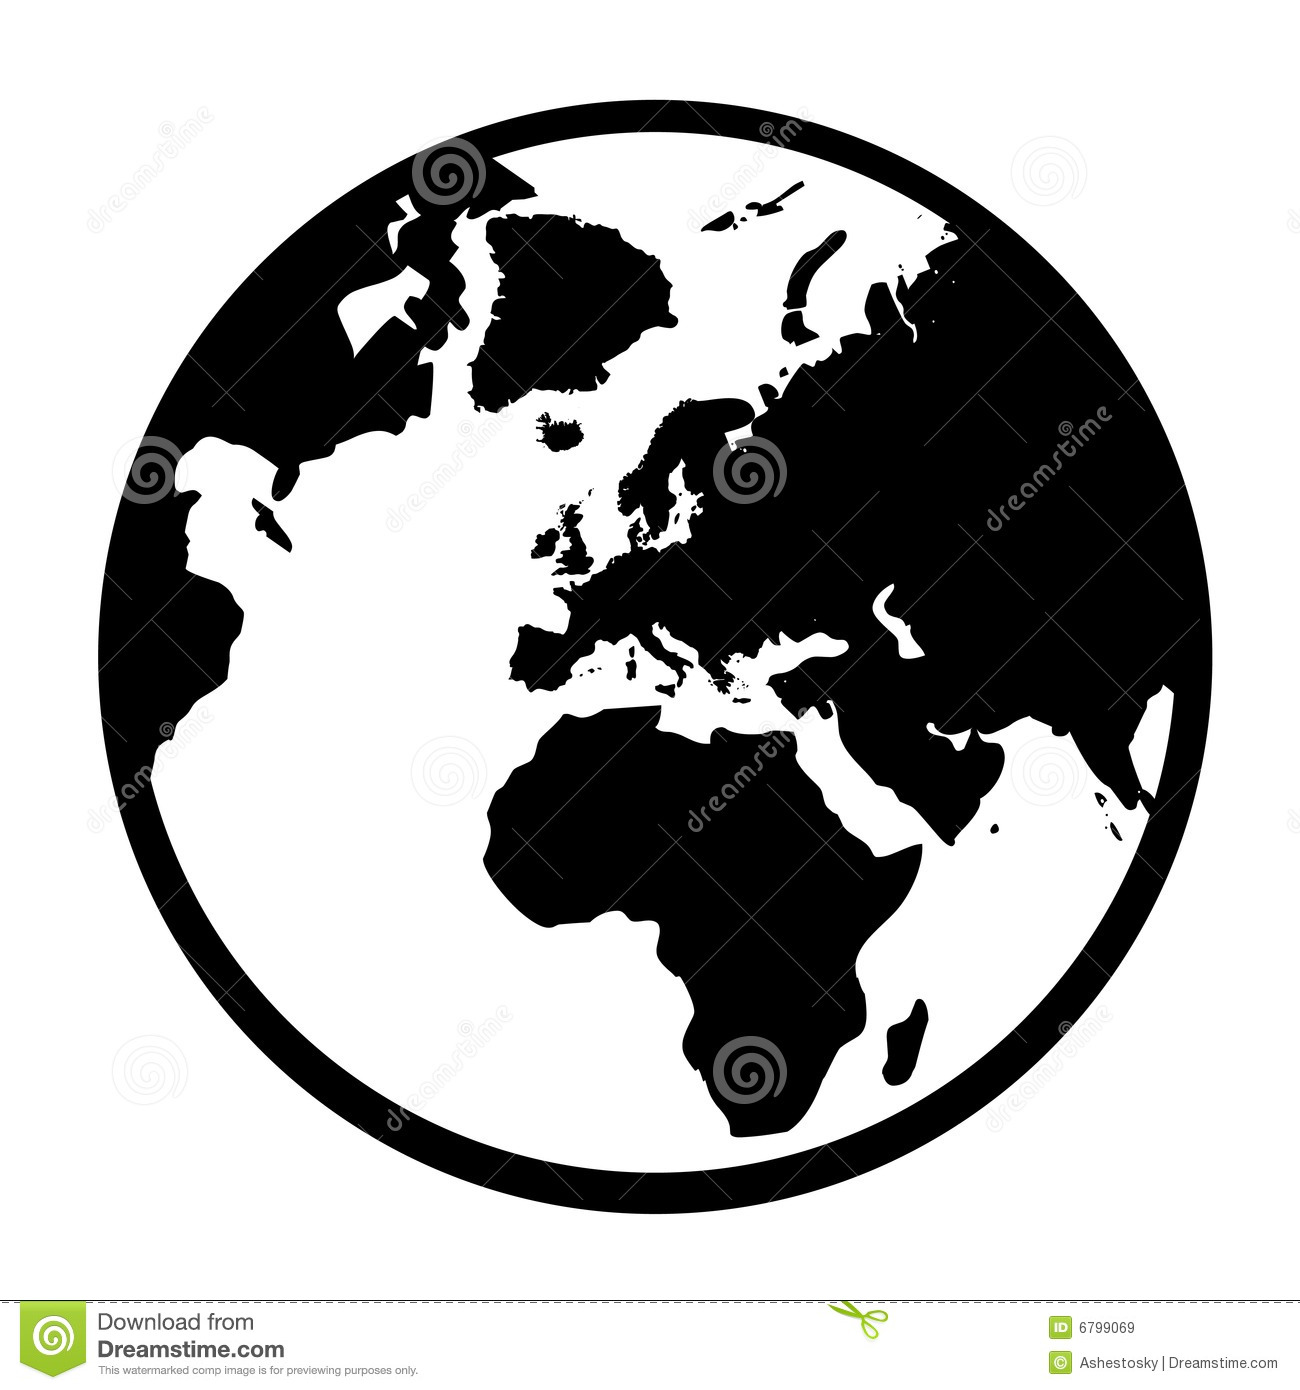 Simple Earth globe in vectorial format